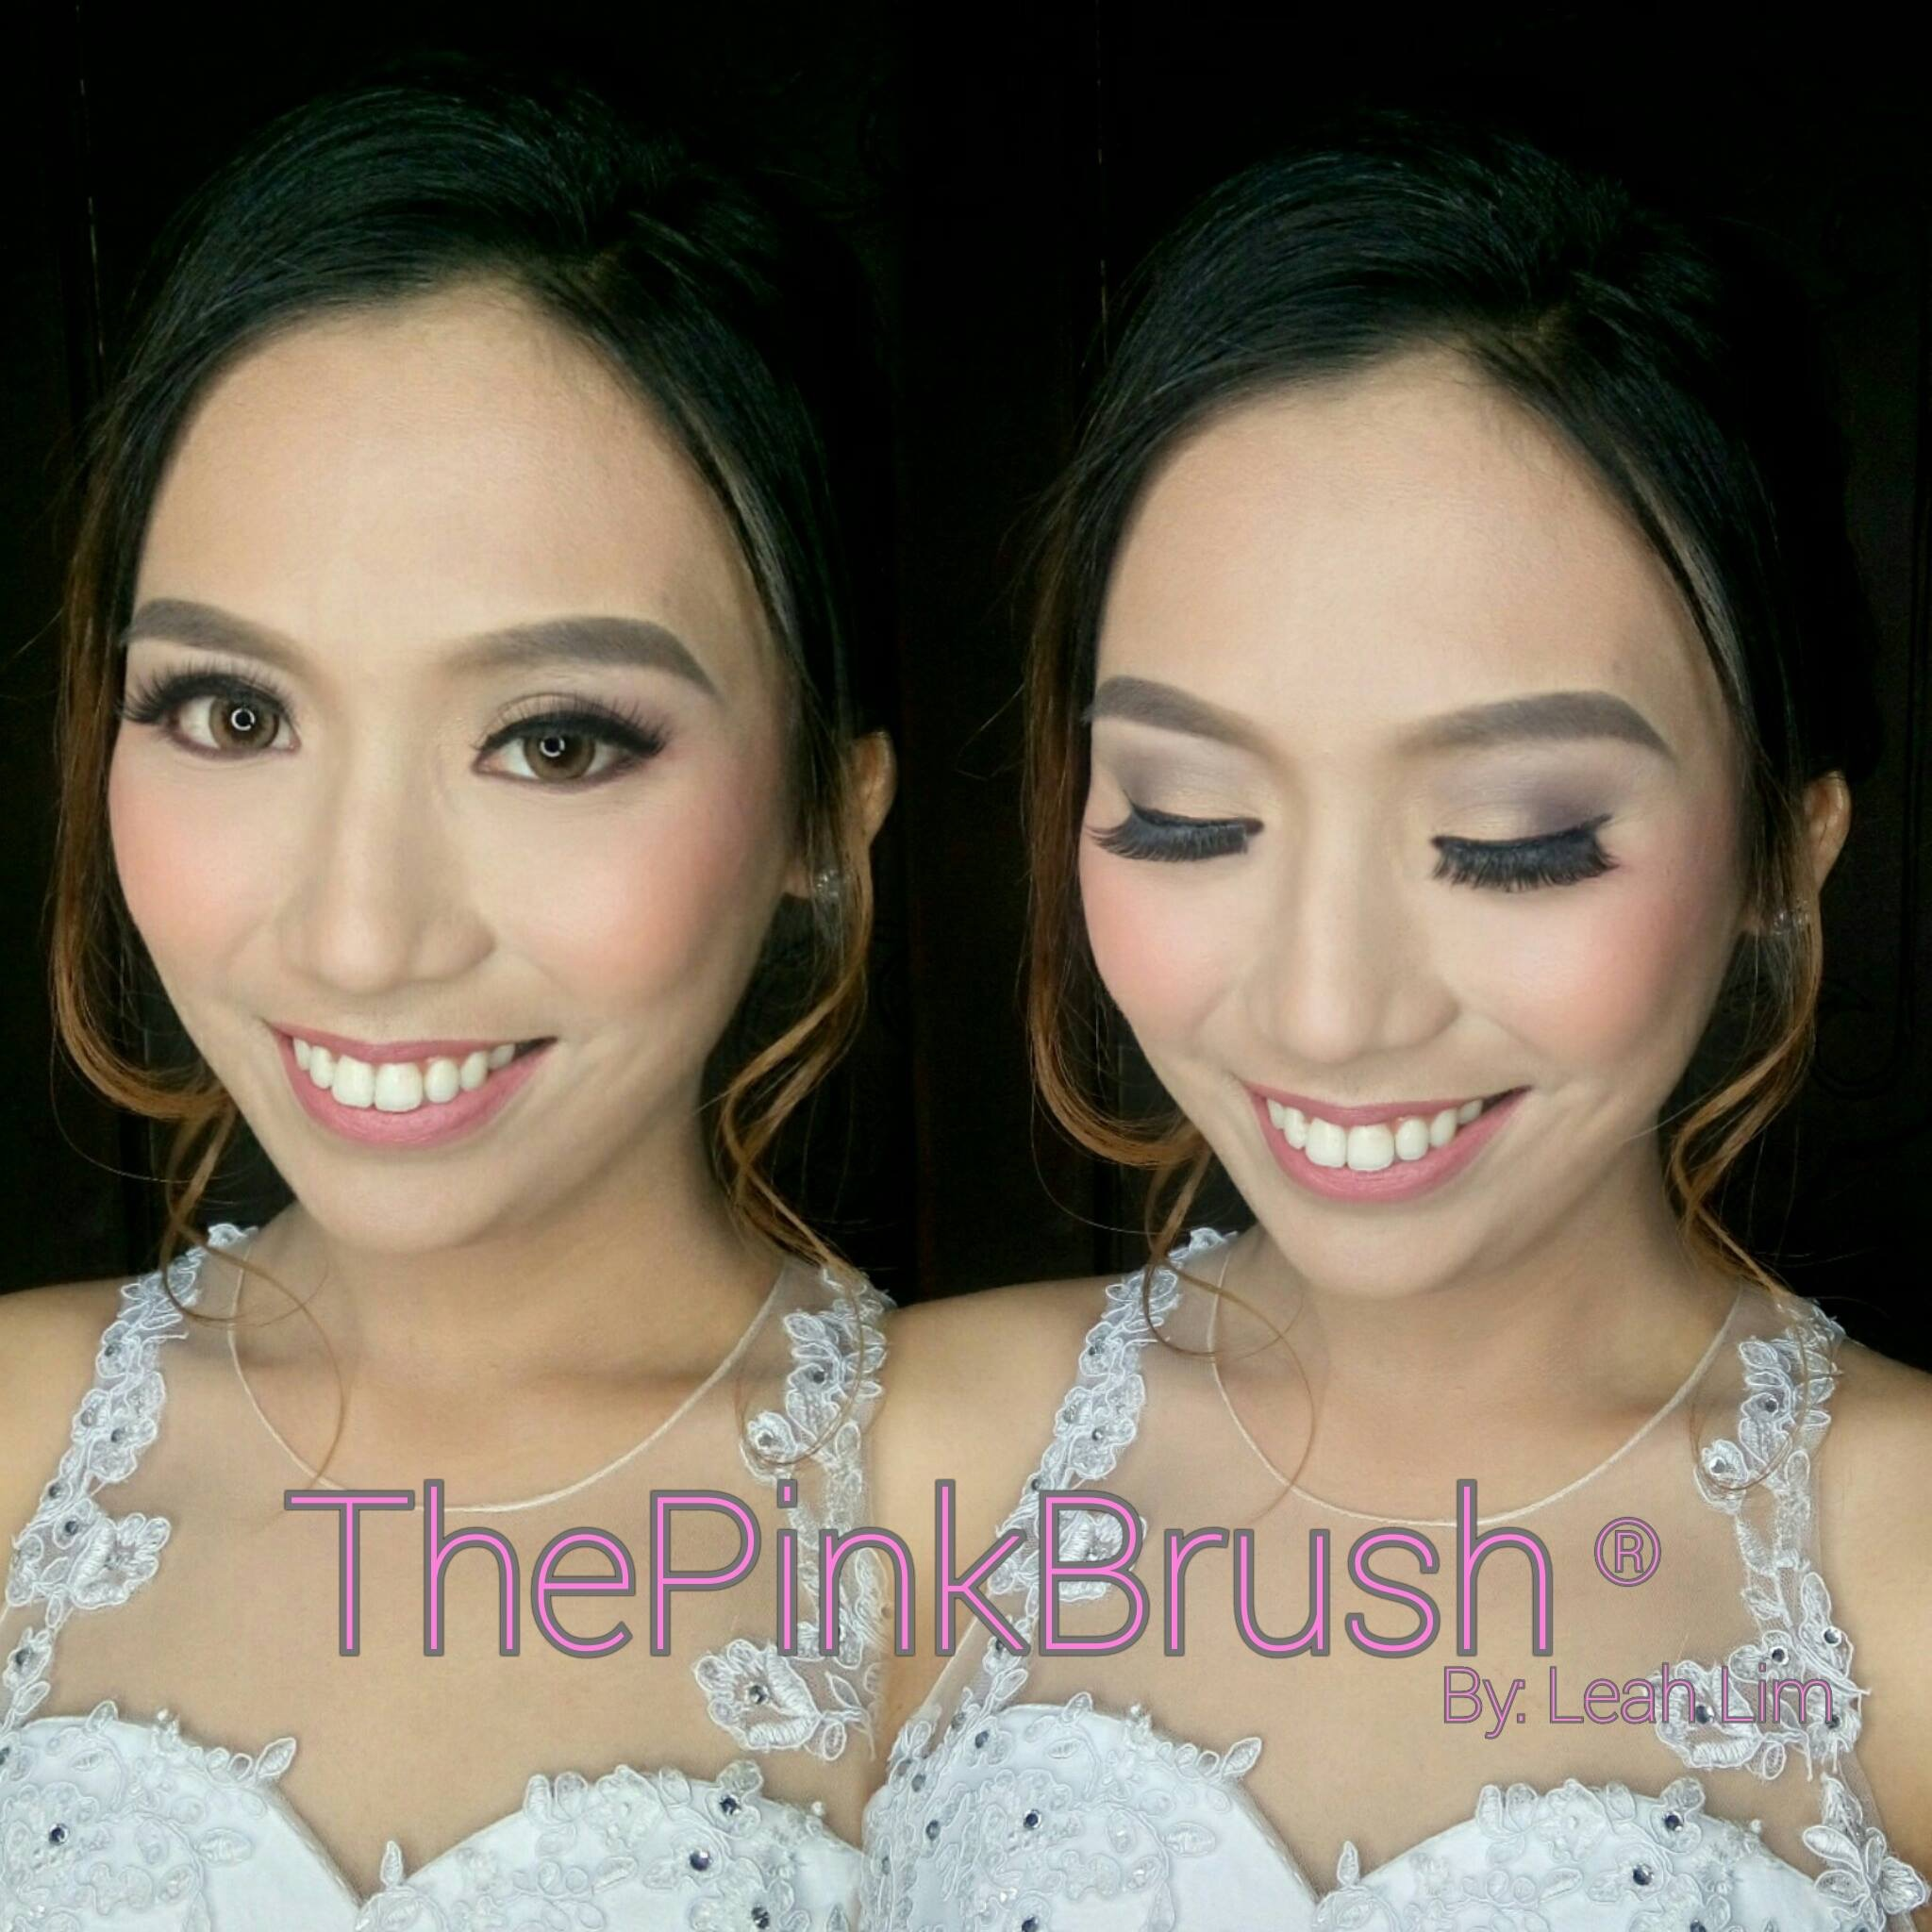 Airbrush Wedding Makeup Artist : The Pink Brush MakeUp Artistry Batangas professional ...